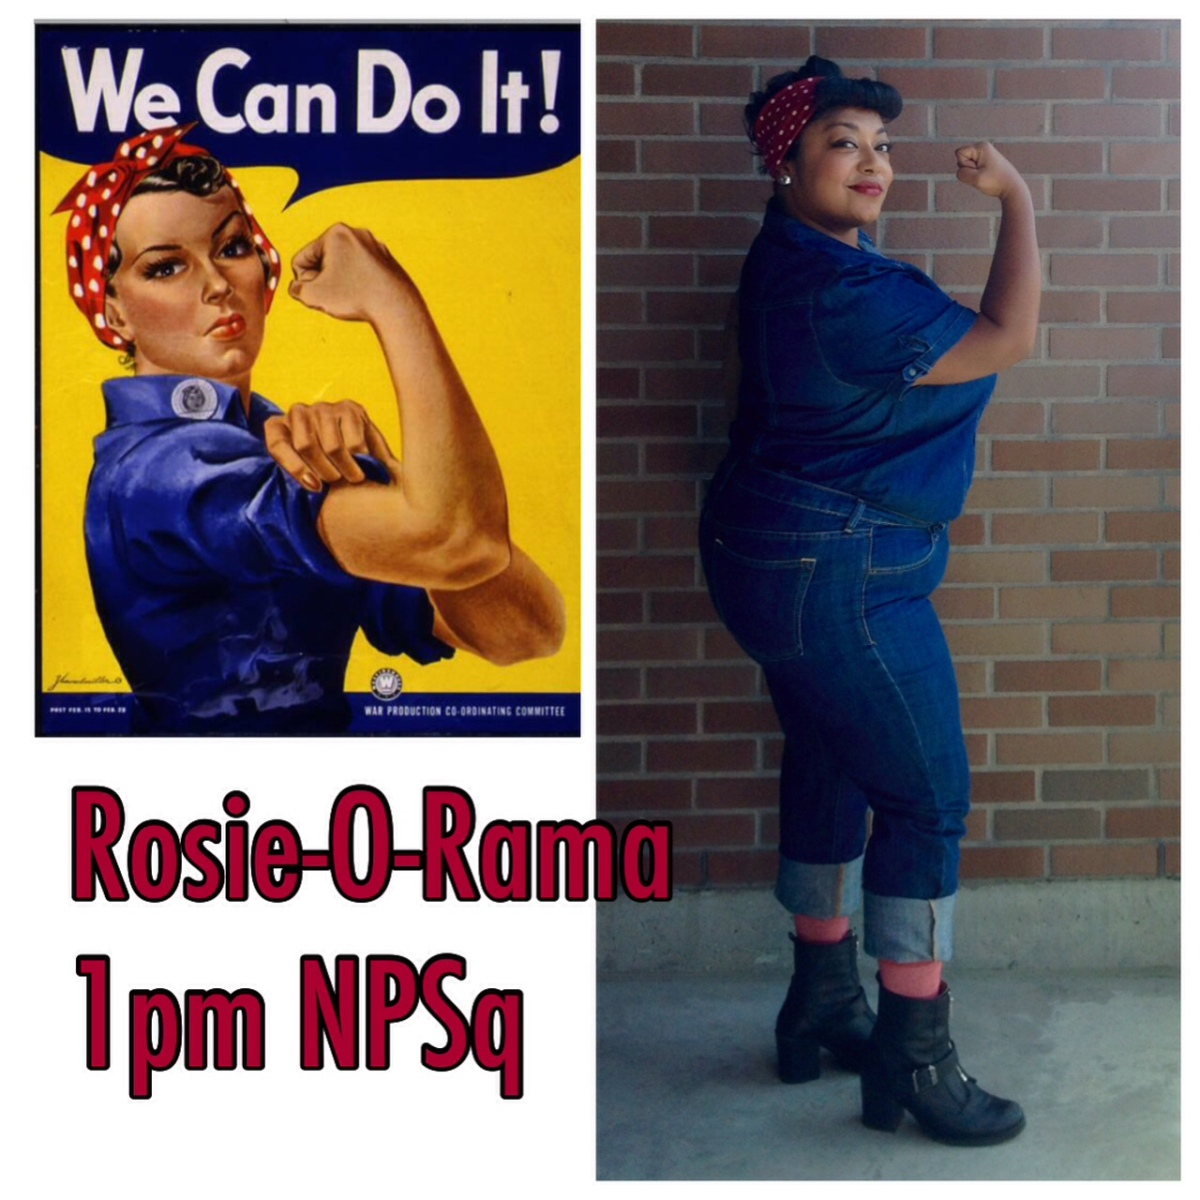 Rosie Rally!